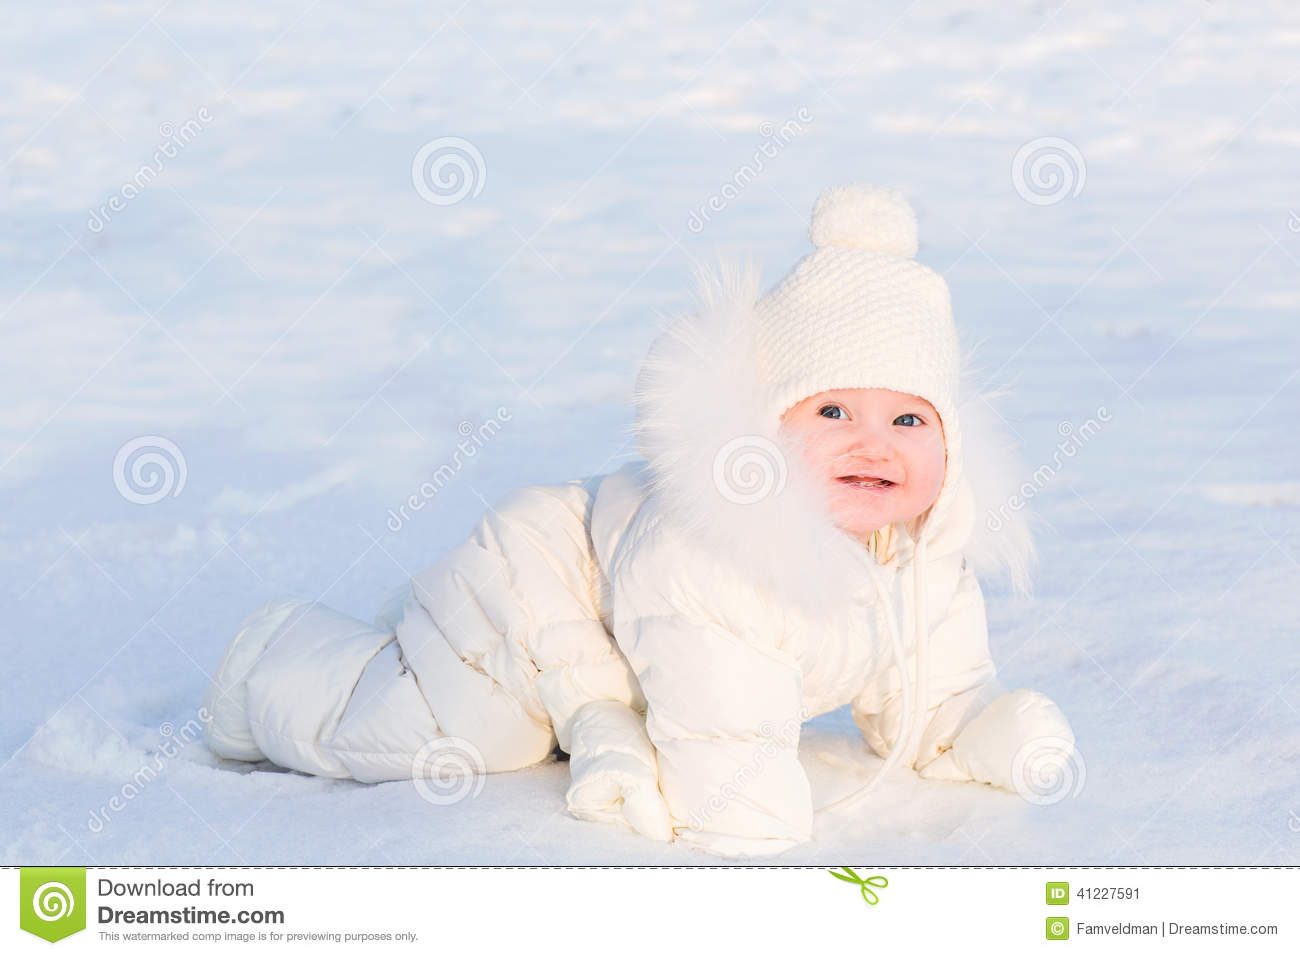 Cute Baby In A White Fur Suit Crawling In Snow On A Very